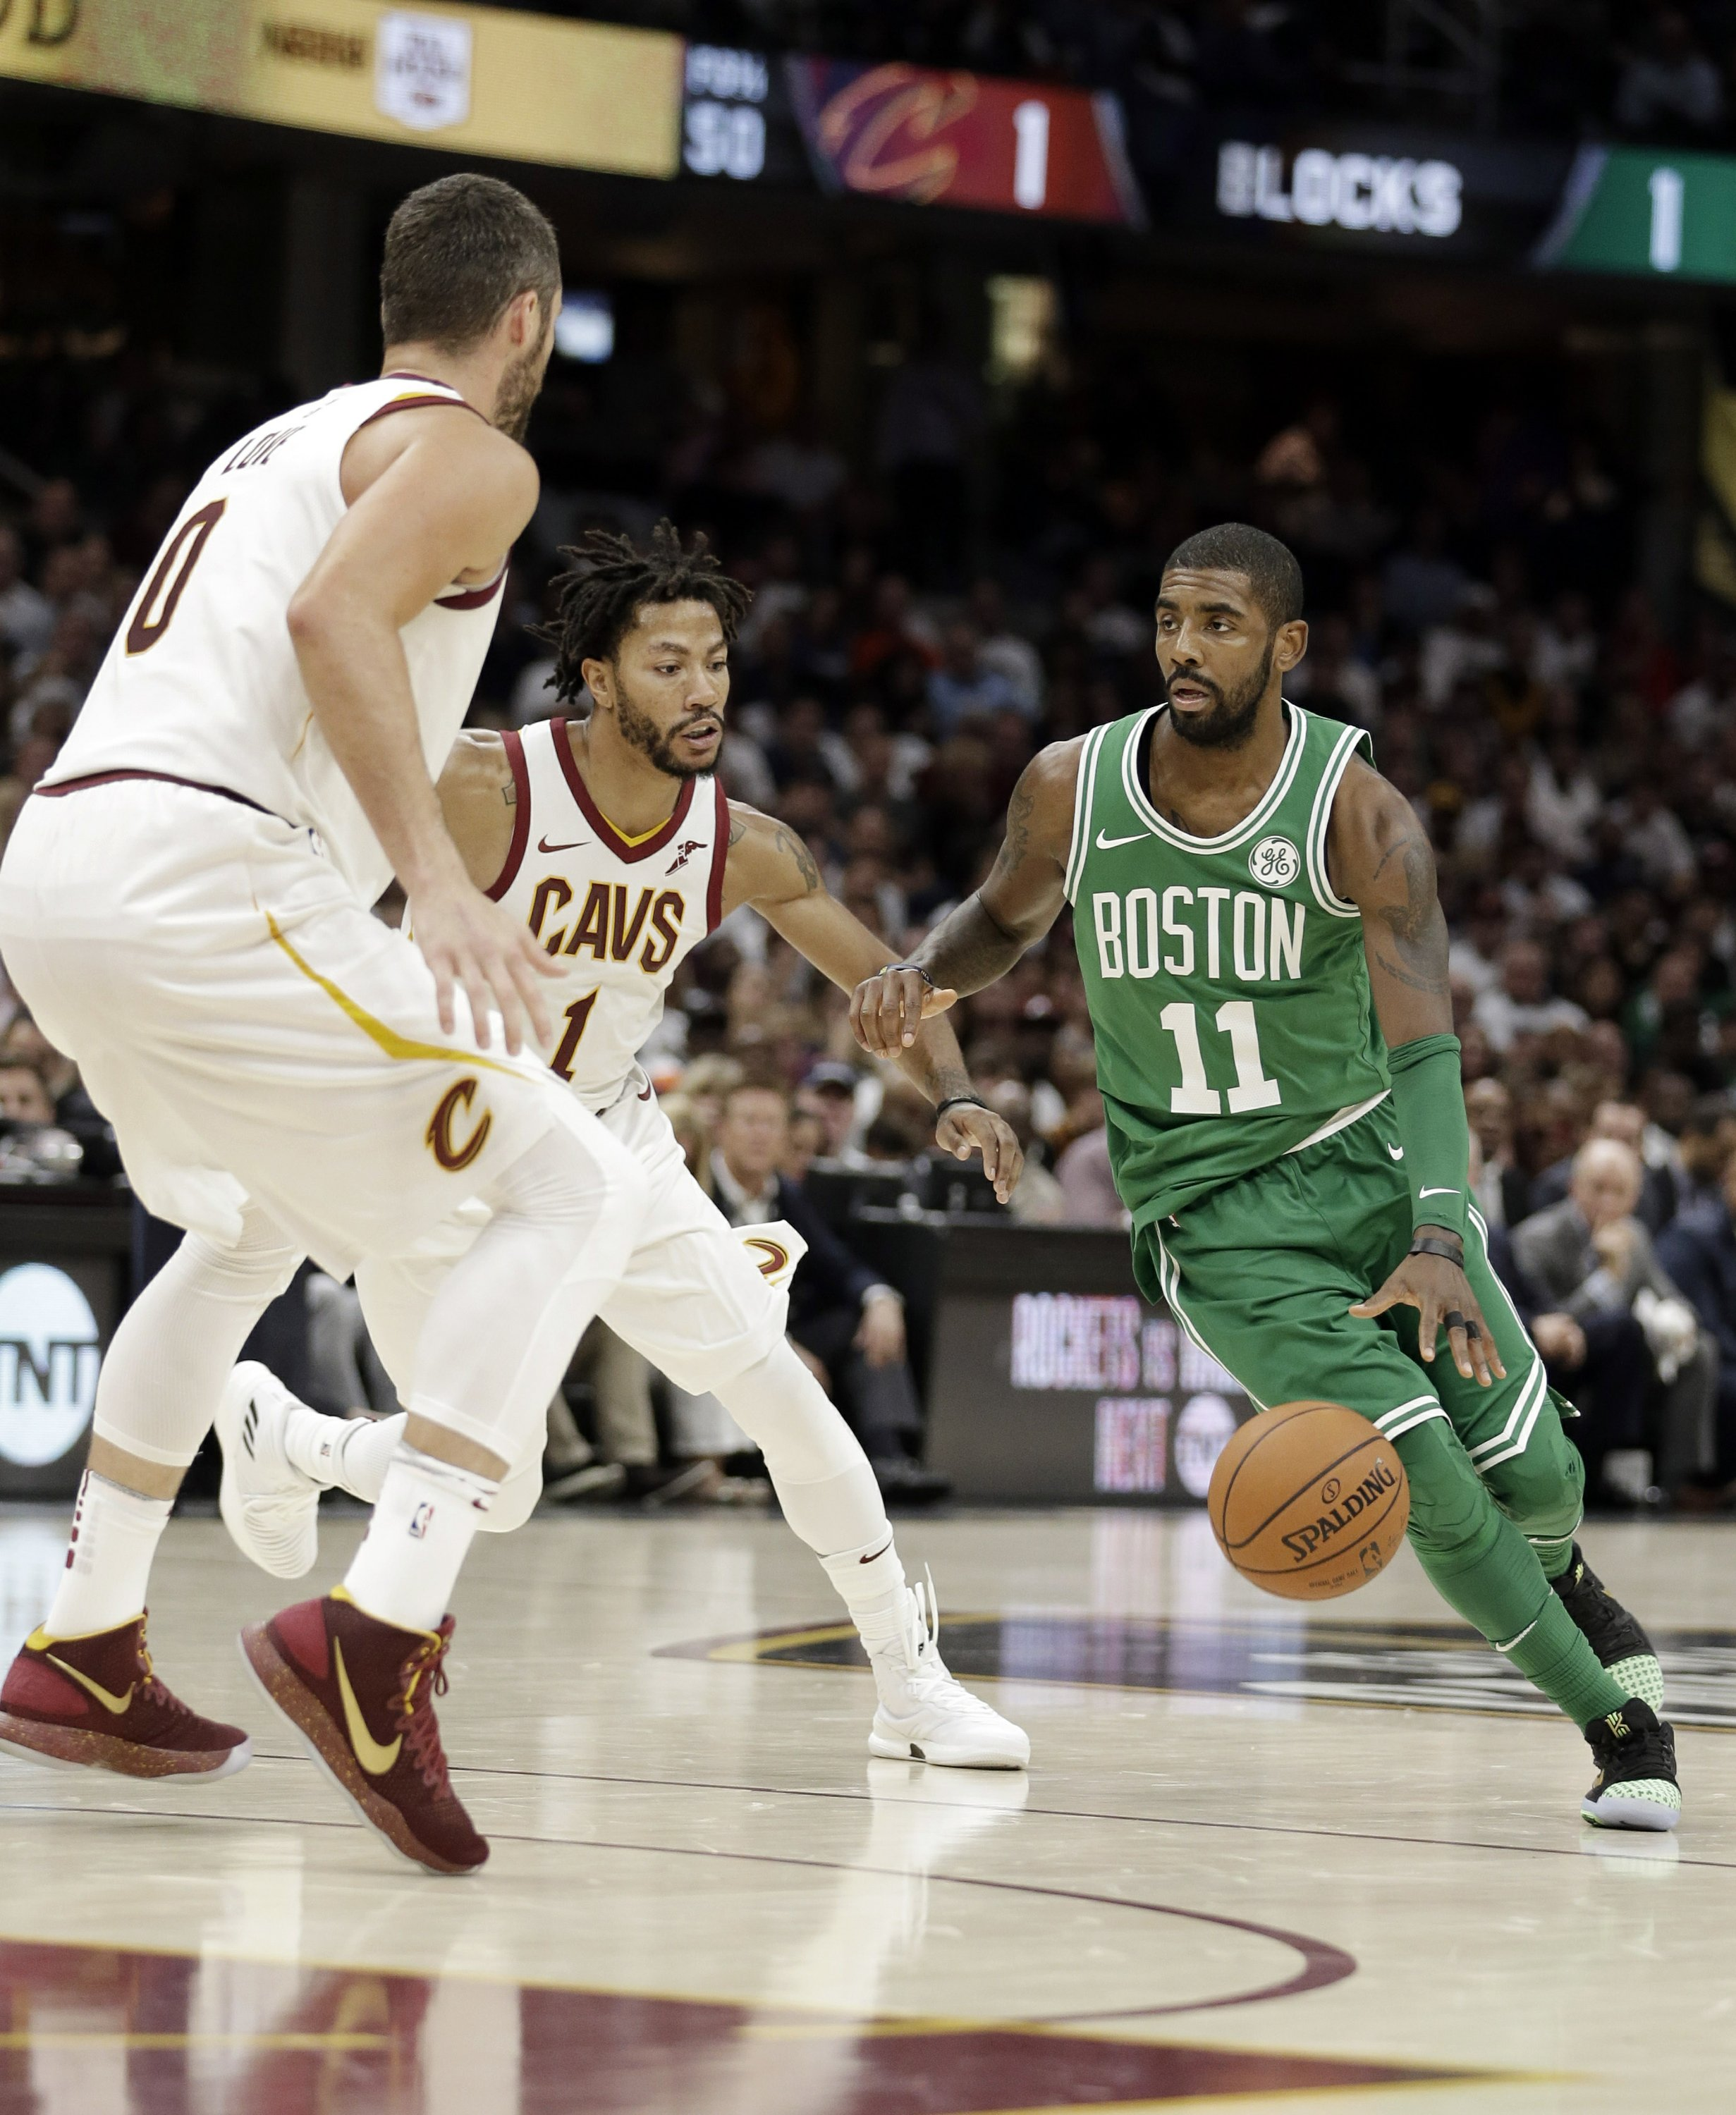 low priced 2f297 8d9c6 Cavs-Celtics game second most-watched opener on TNT